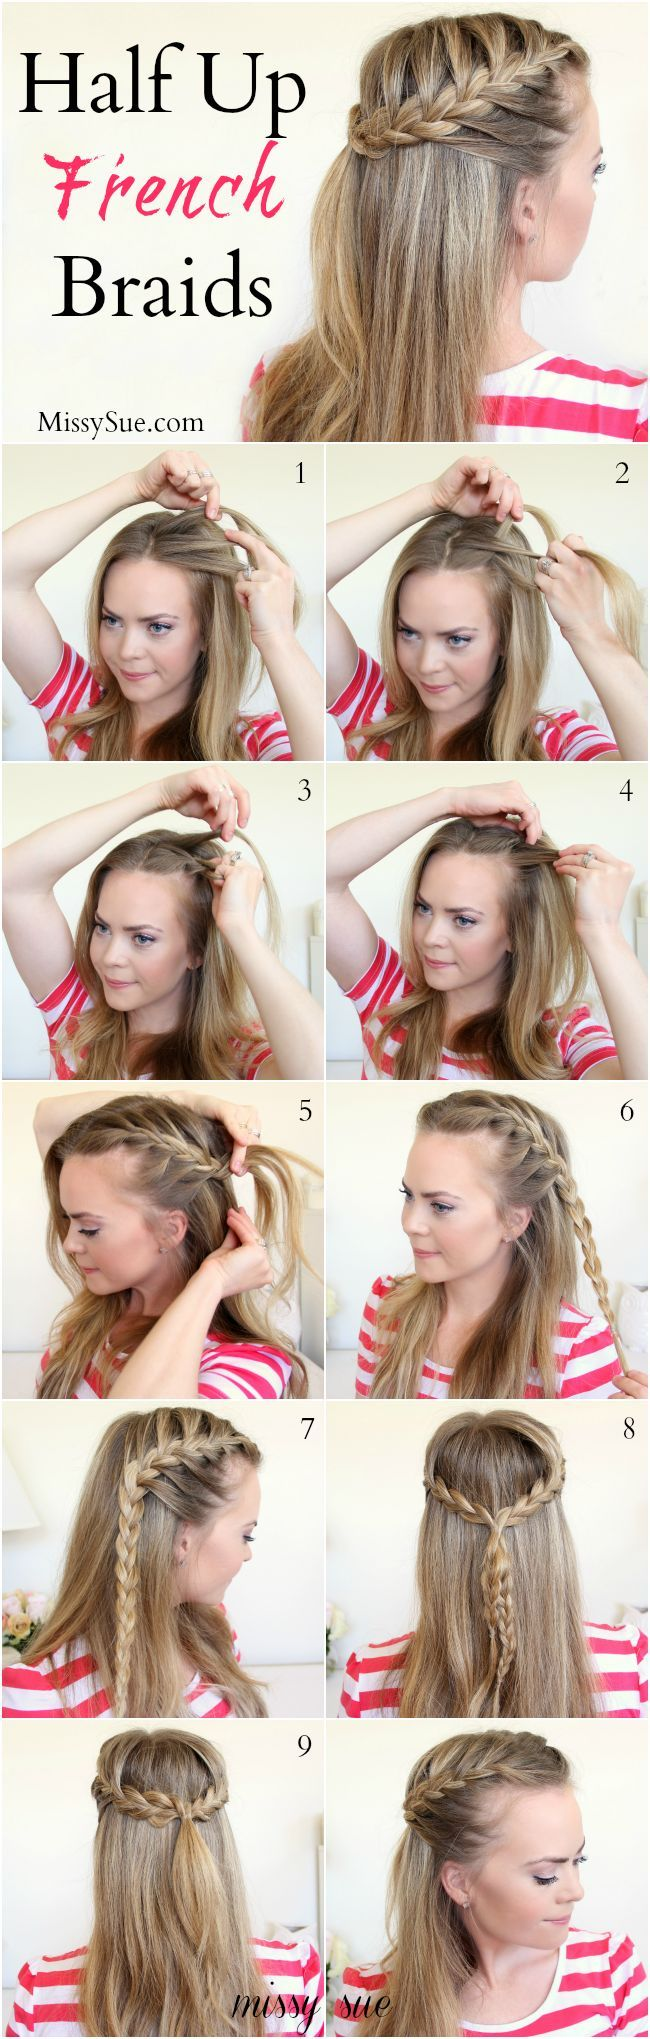 Awesome 1000 Ideas About School Hair On Pinterest Hair Rock Hair And Short Hairstyles Gunalazisus